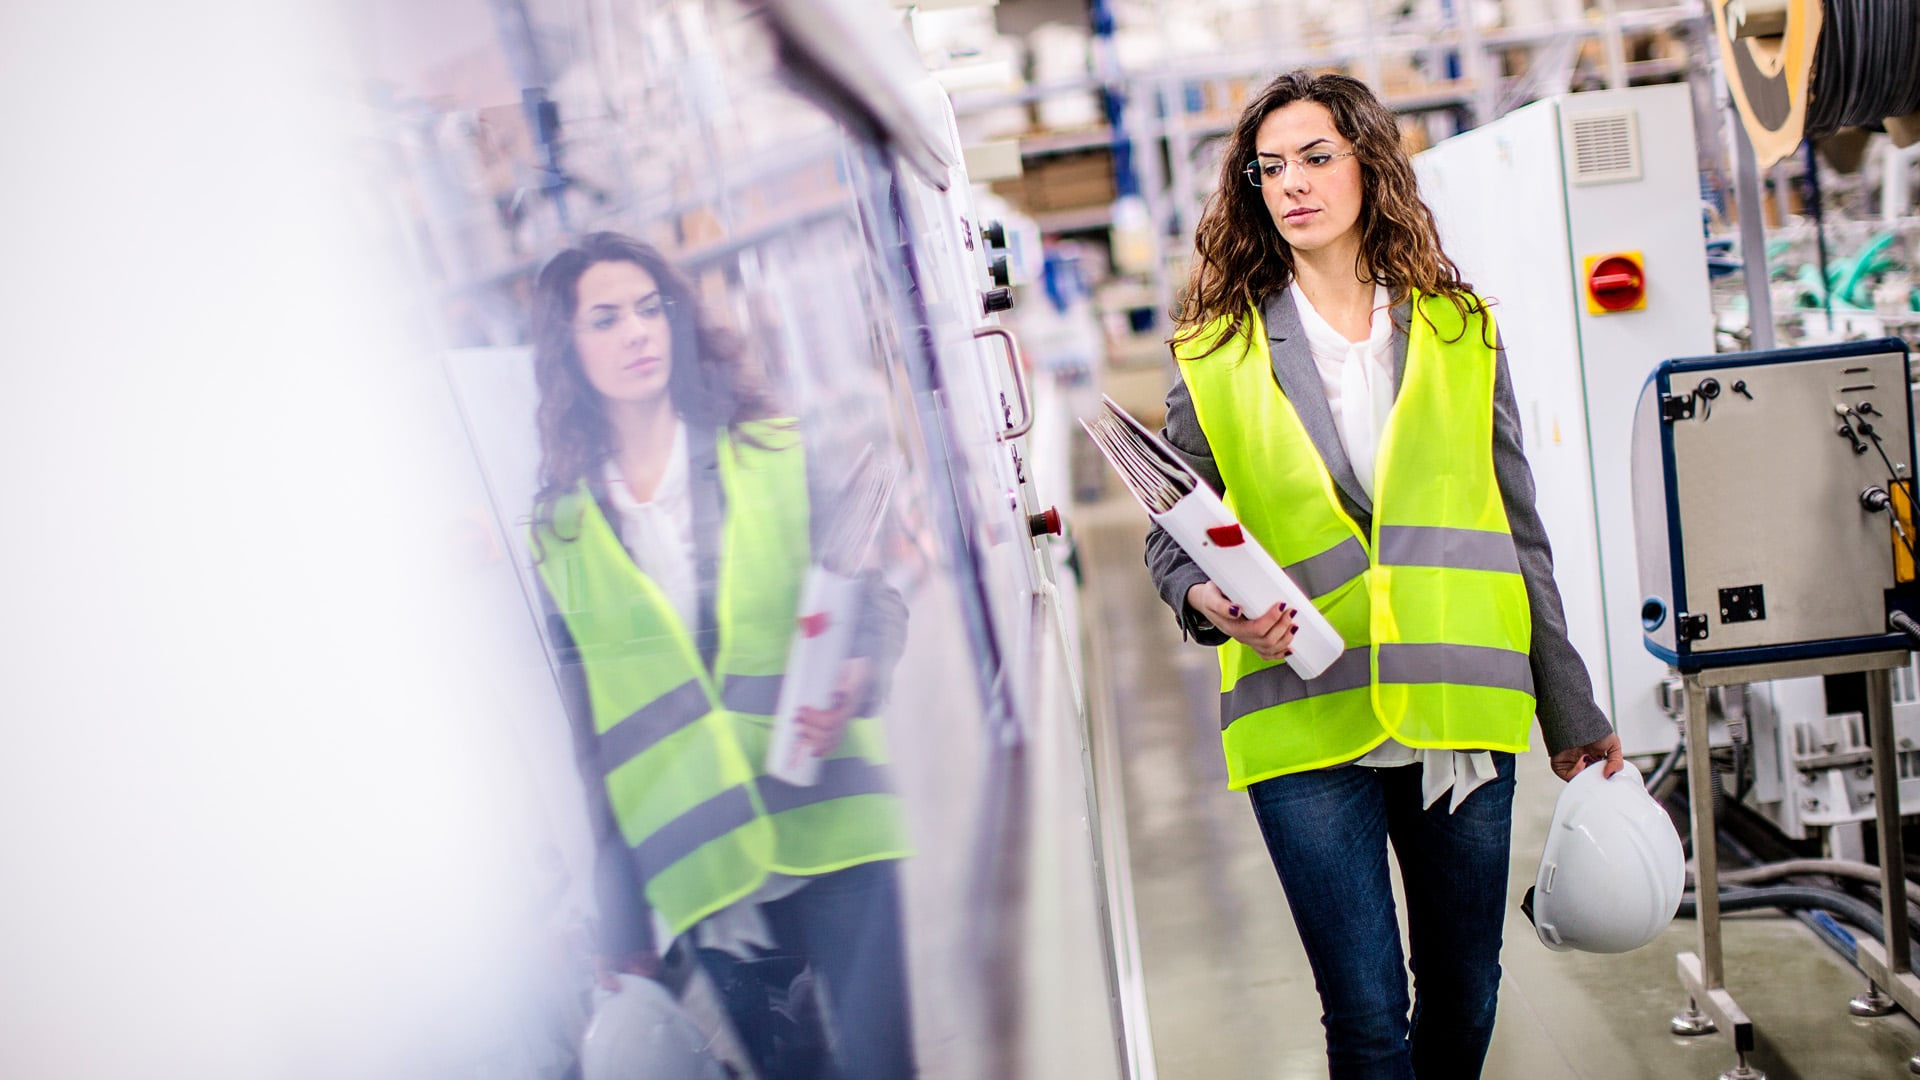 How To Become A Health Safety Engineer Career Girls Explore Careers